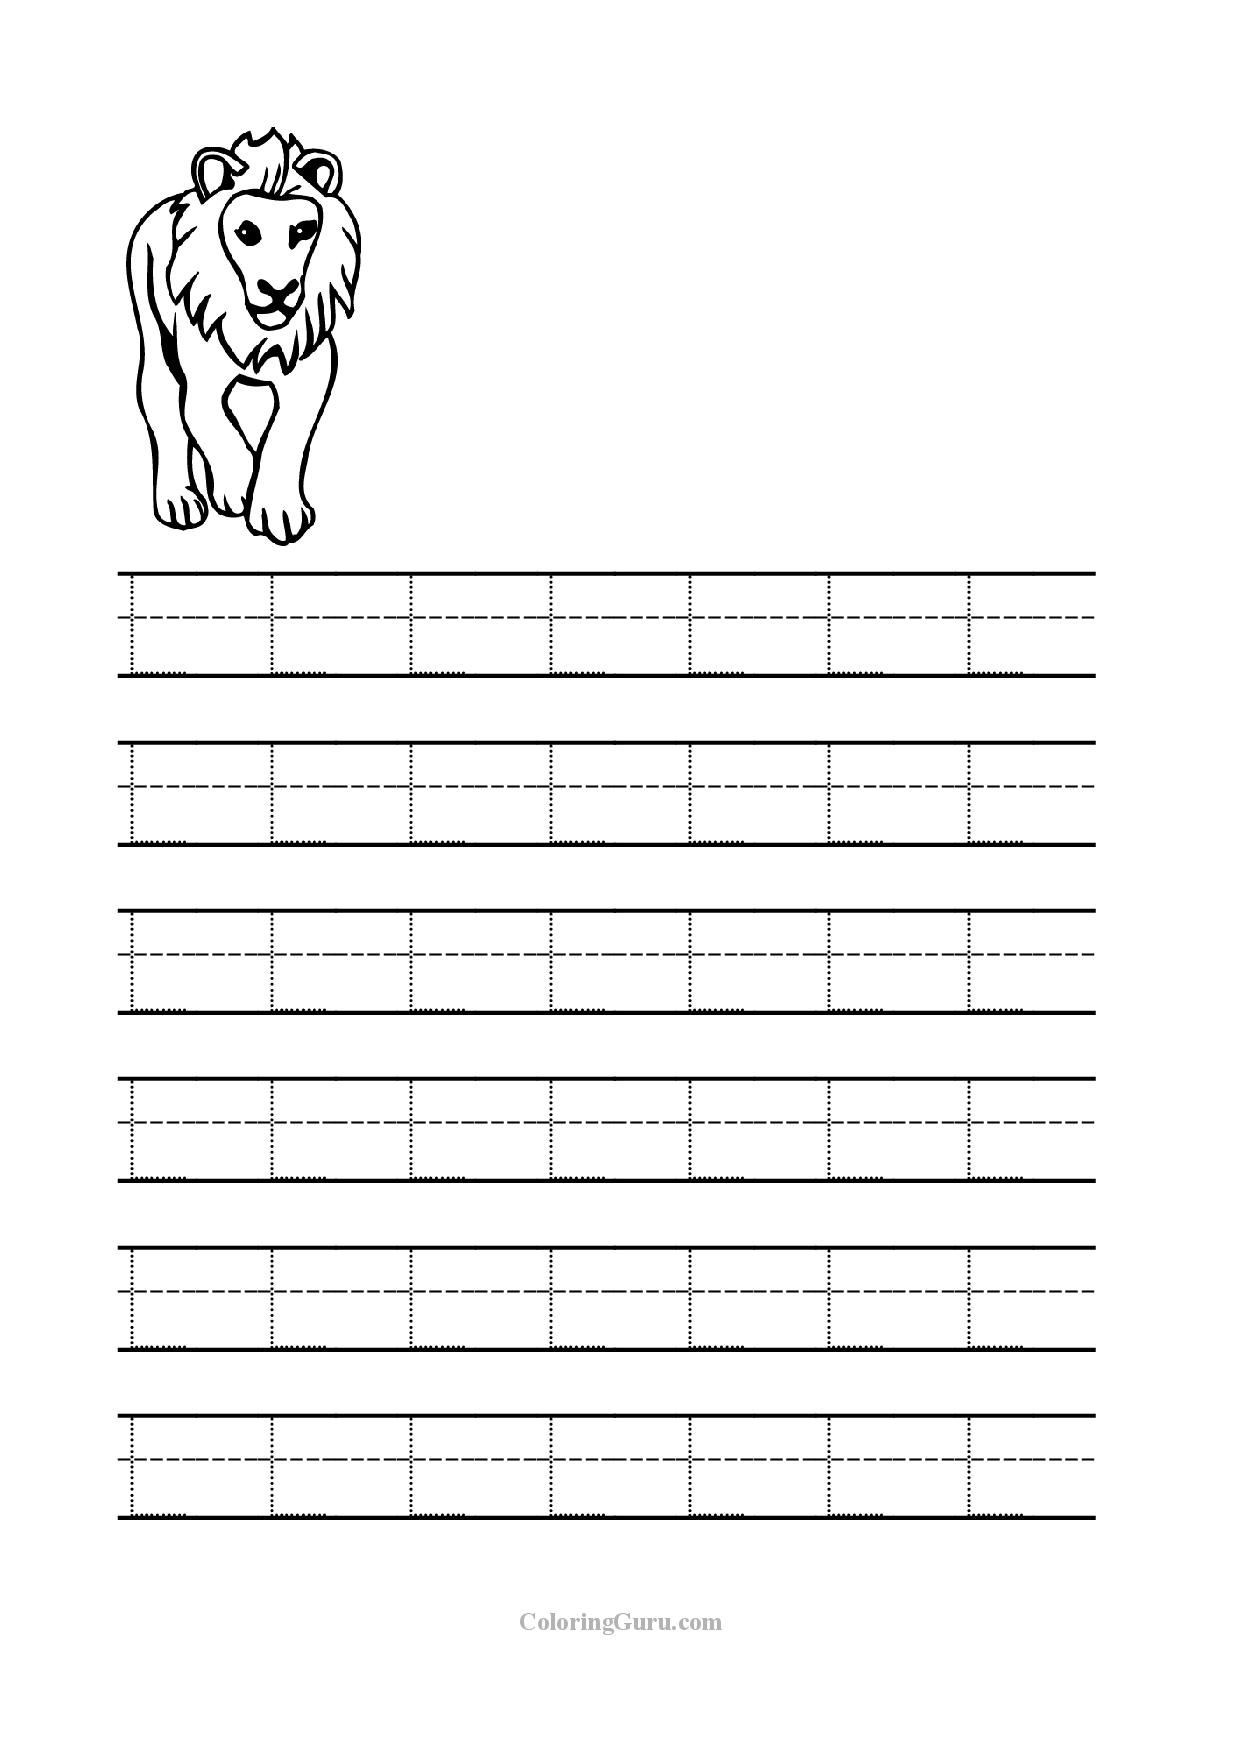 Letter L Worksheet for Preschool Free Printable Tracing Letter L Worksheets for Preschool